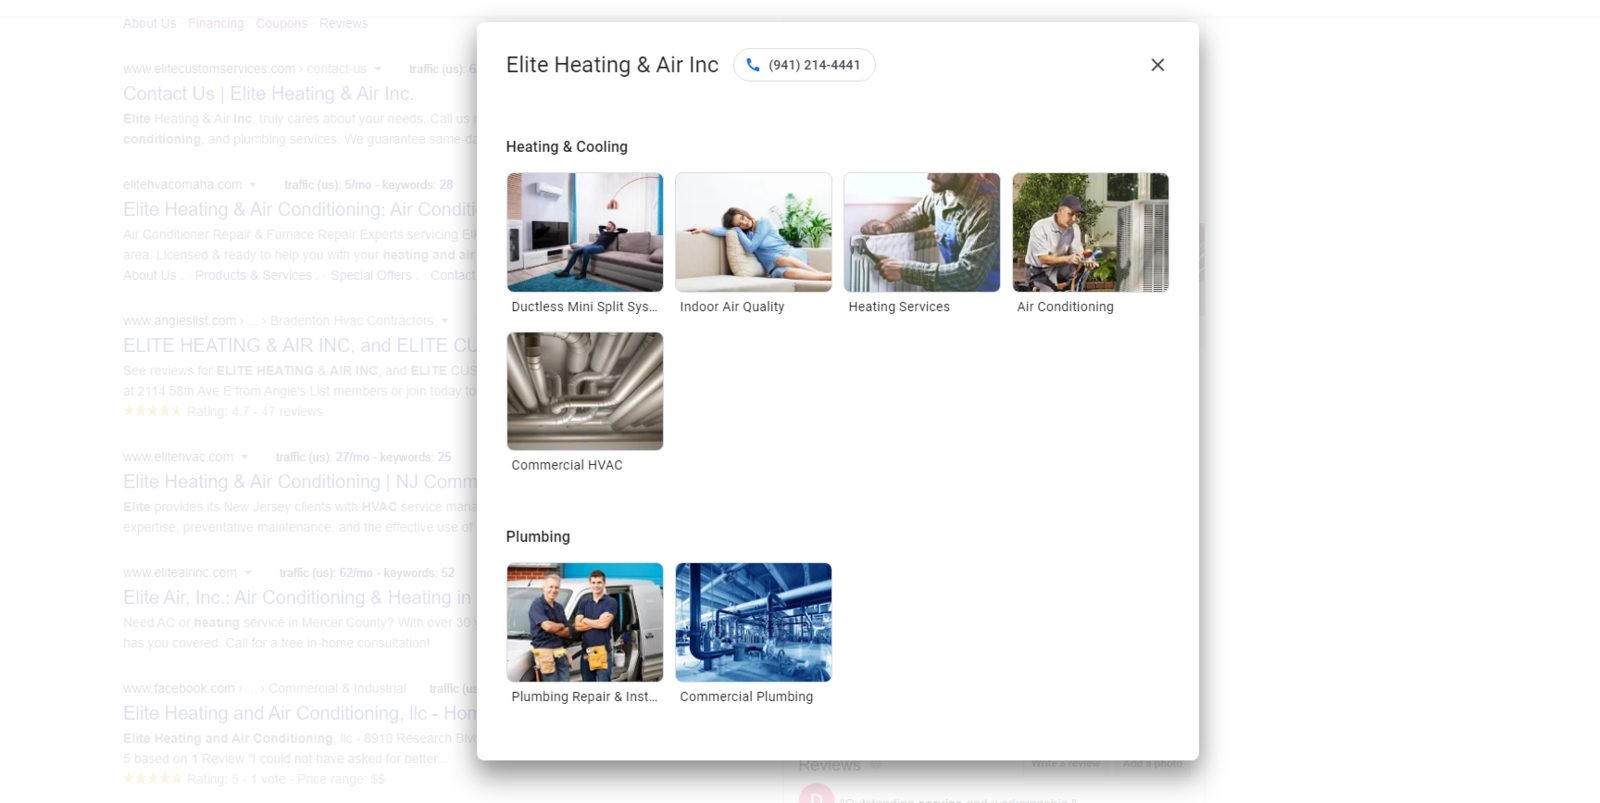 elite_heating_and_air_inc_Google_Search.png